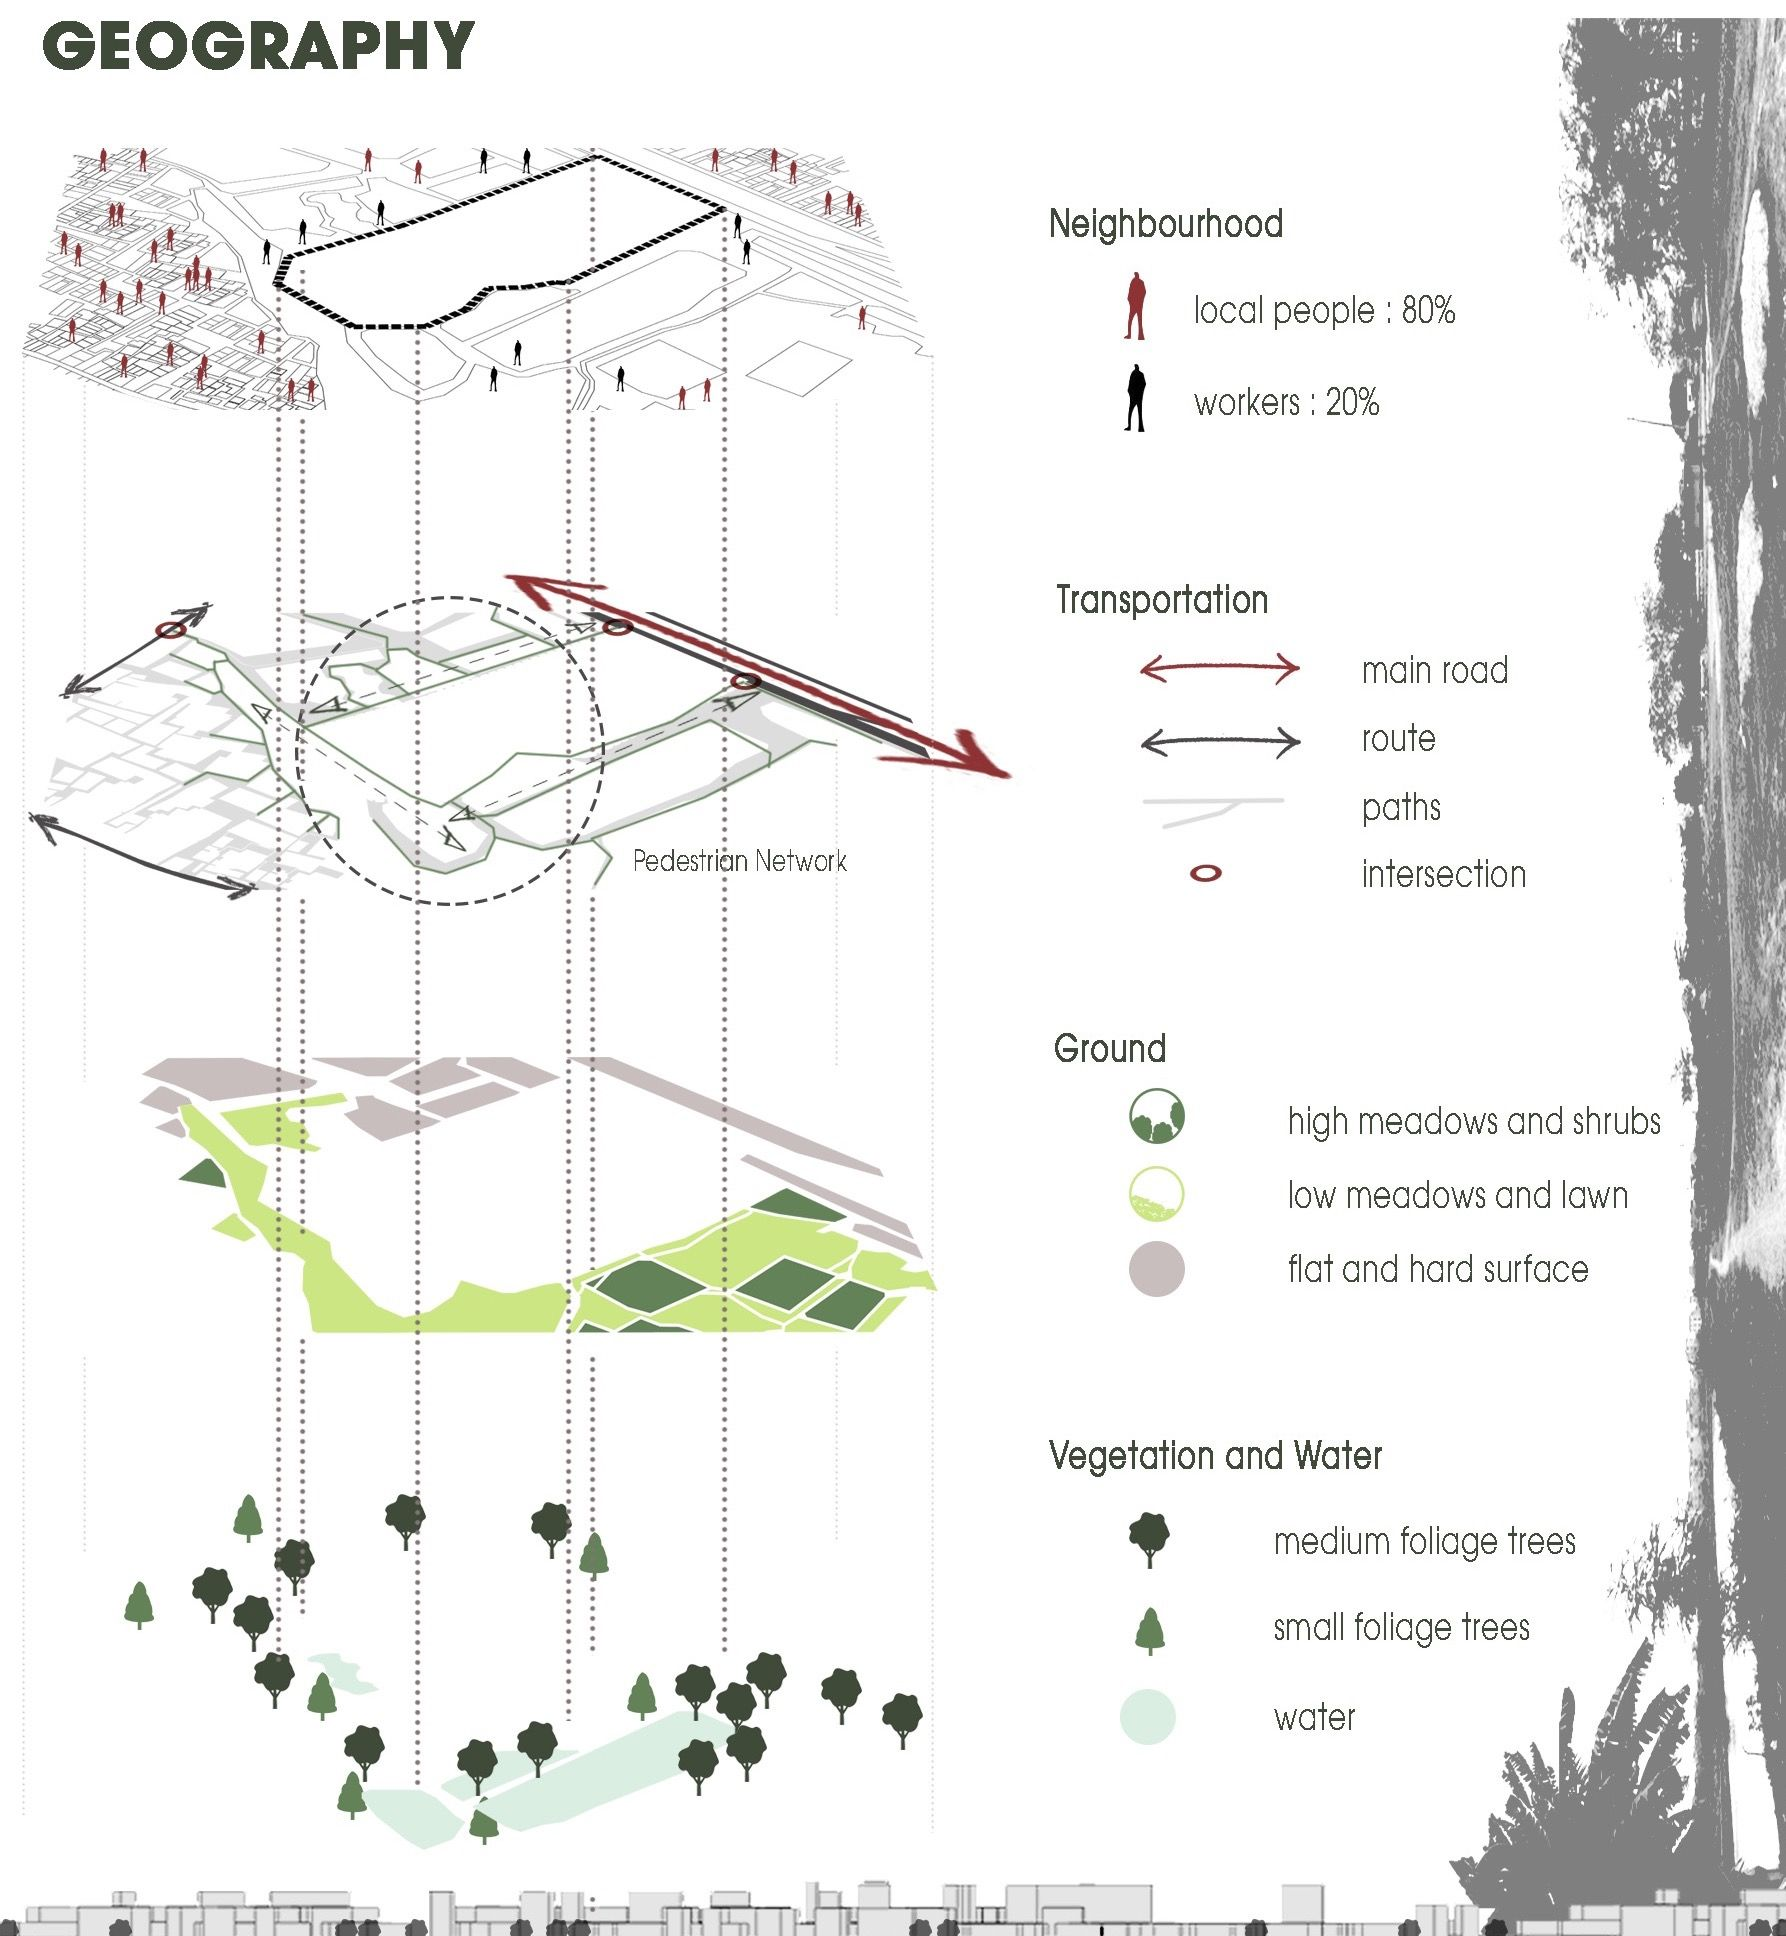 Geography #site #analysis #architecture #diagrams